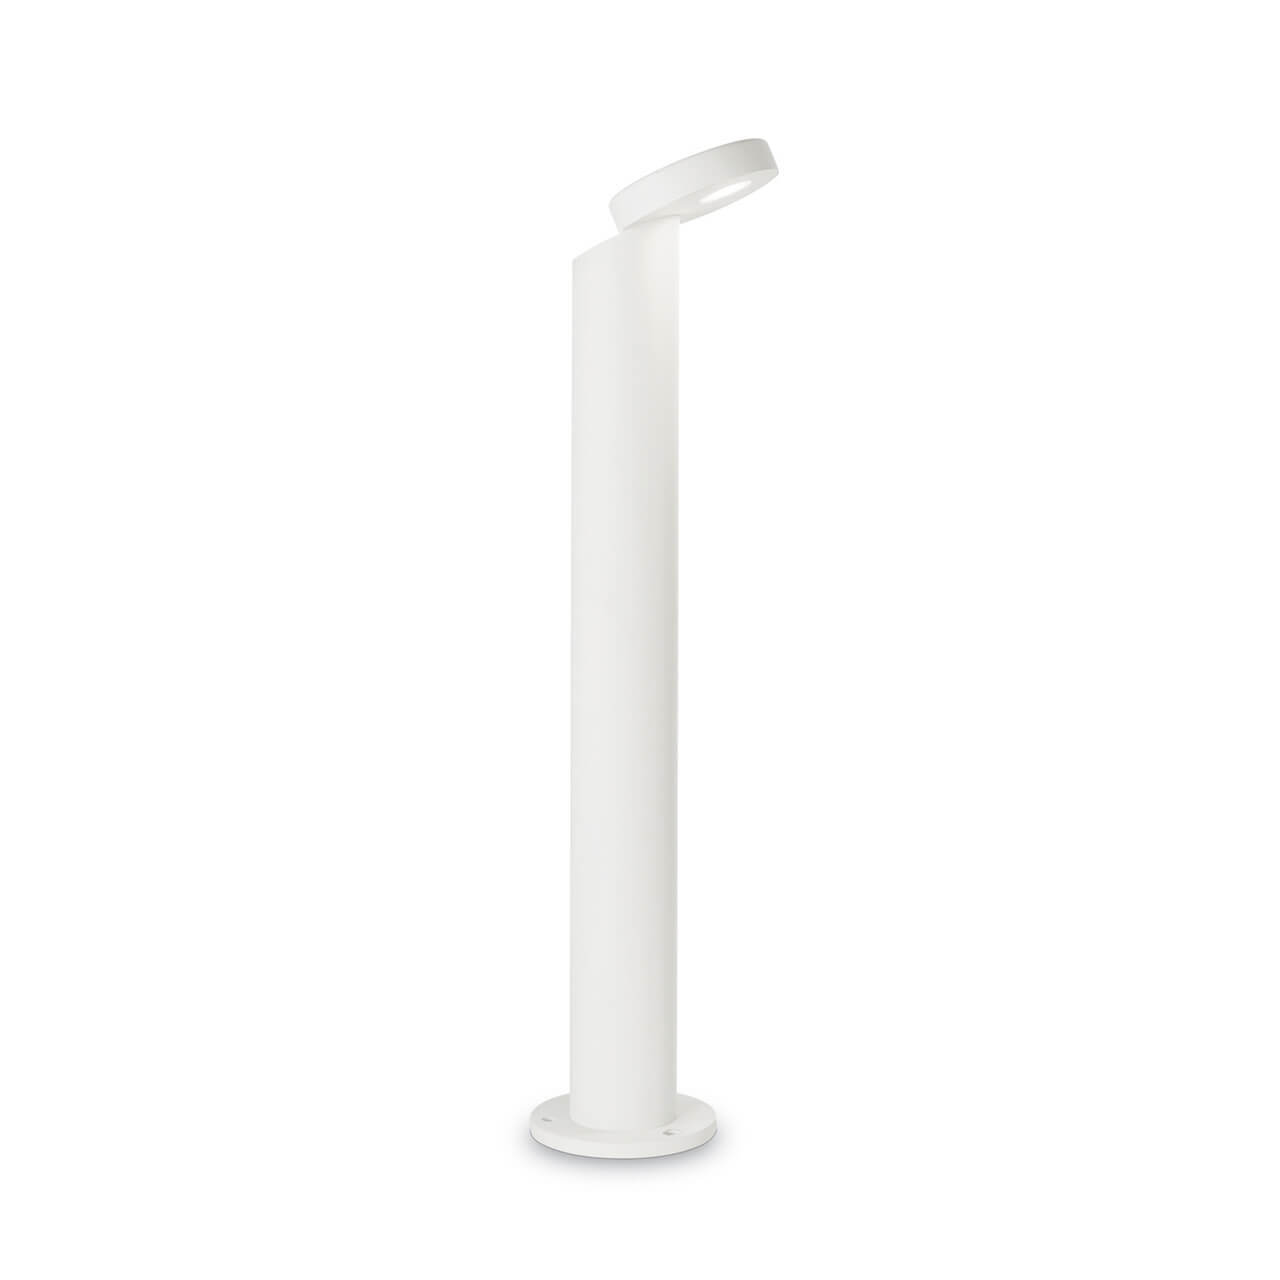 Светильник Ideal Lux Snoopy PT1 Bianco